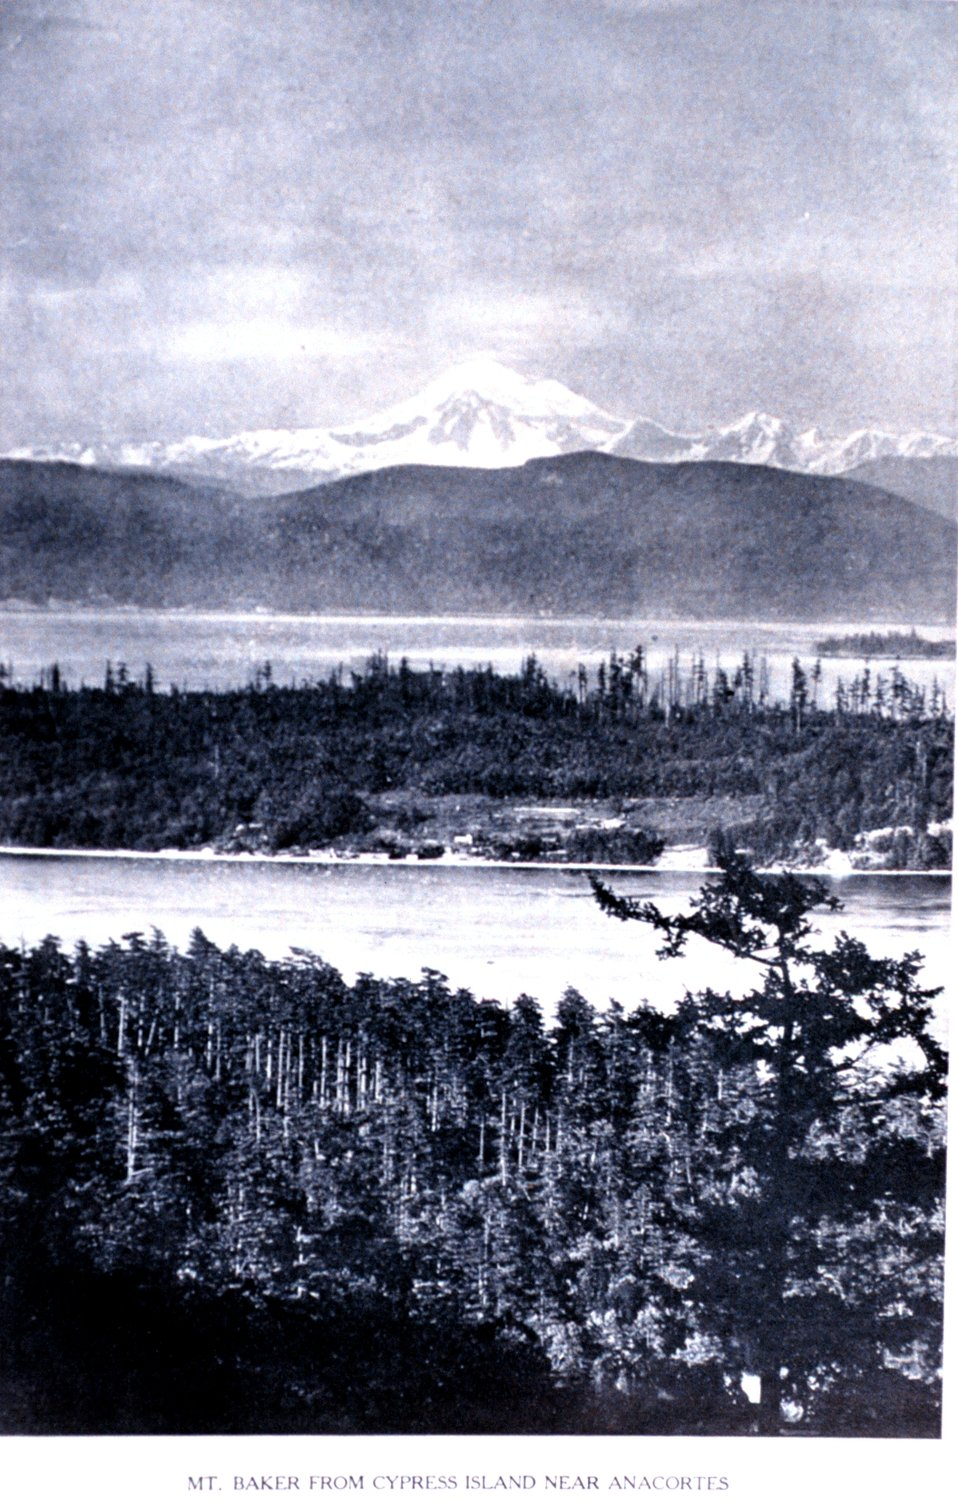 'Mt. Baker from Cypress Island, Near Anacortes'. In:  'Puget Sound and Western Washington  Cities-Towns Scenery', by Robert A. Reid, Robert A. Reid Publisher, Seattle, 1912.  P. 19.